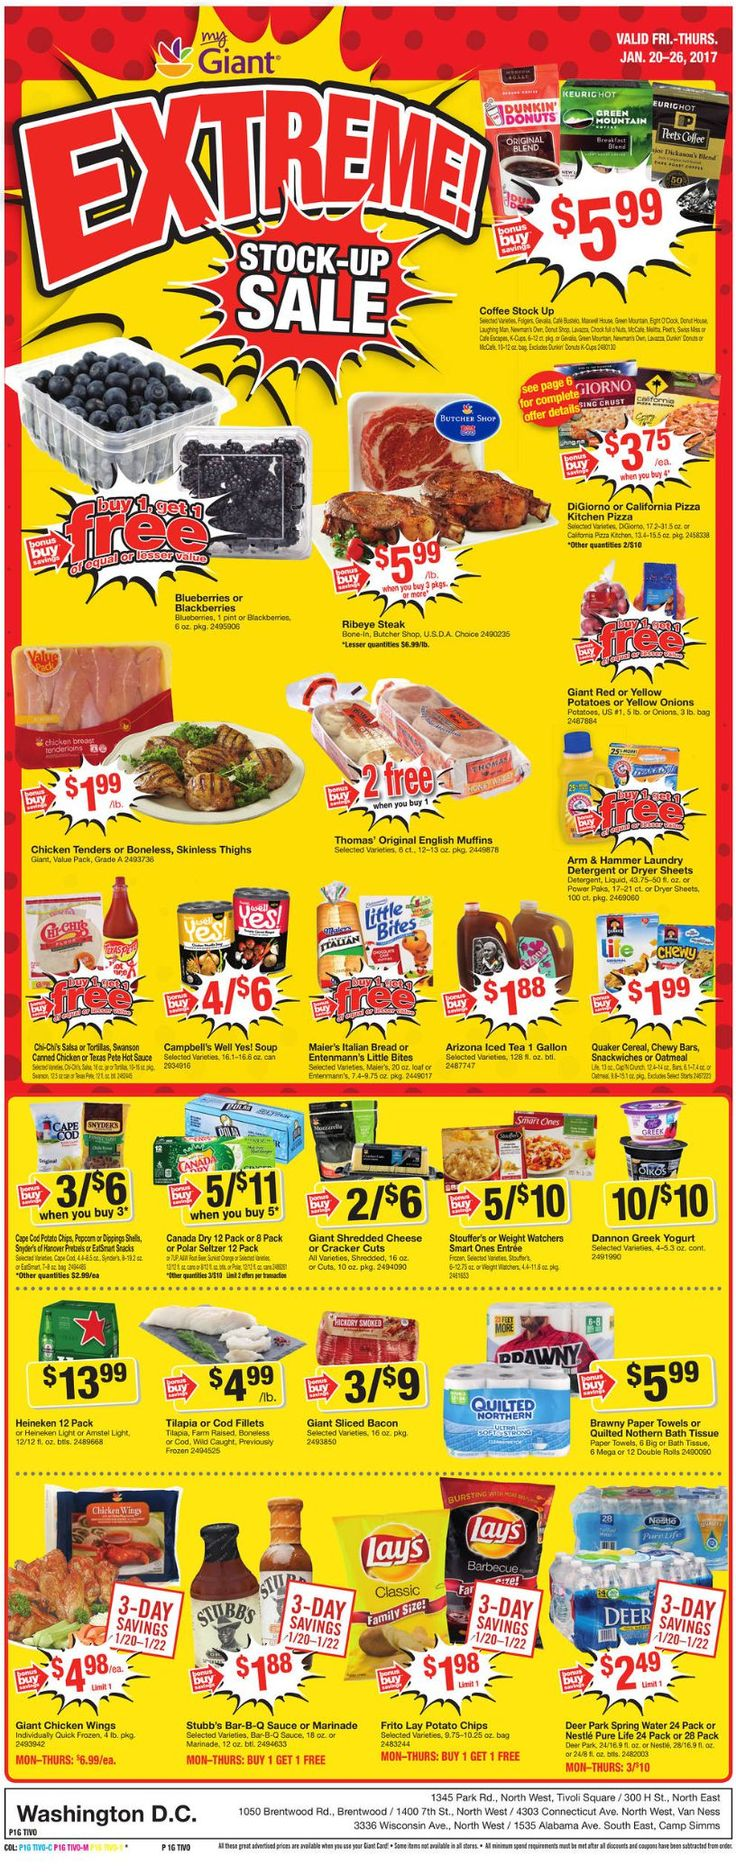 Giant Food Weekly Ad January 20 - 26, 2017 - http://www.olcatalog.com/grocery/giant-food-weekly-ad.html